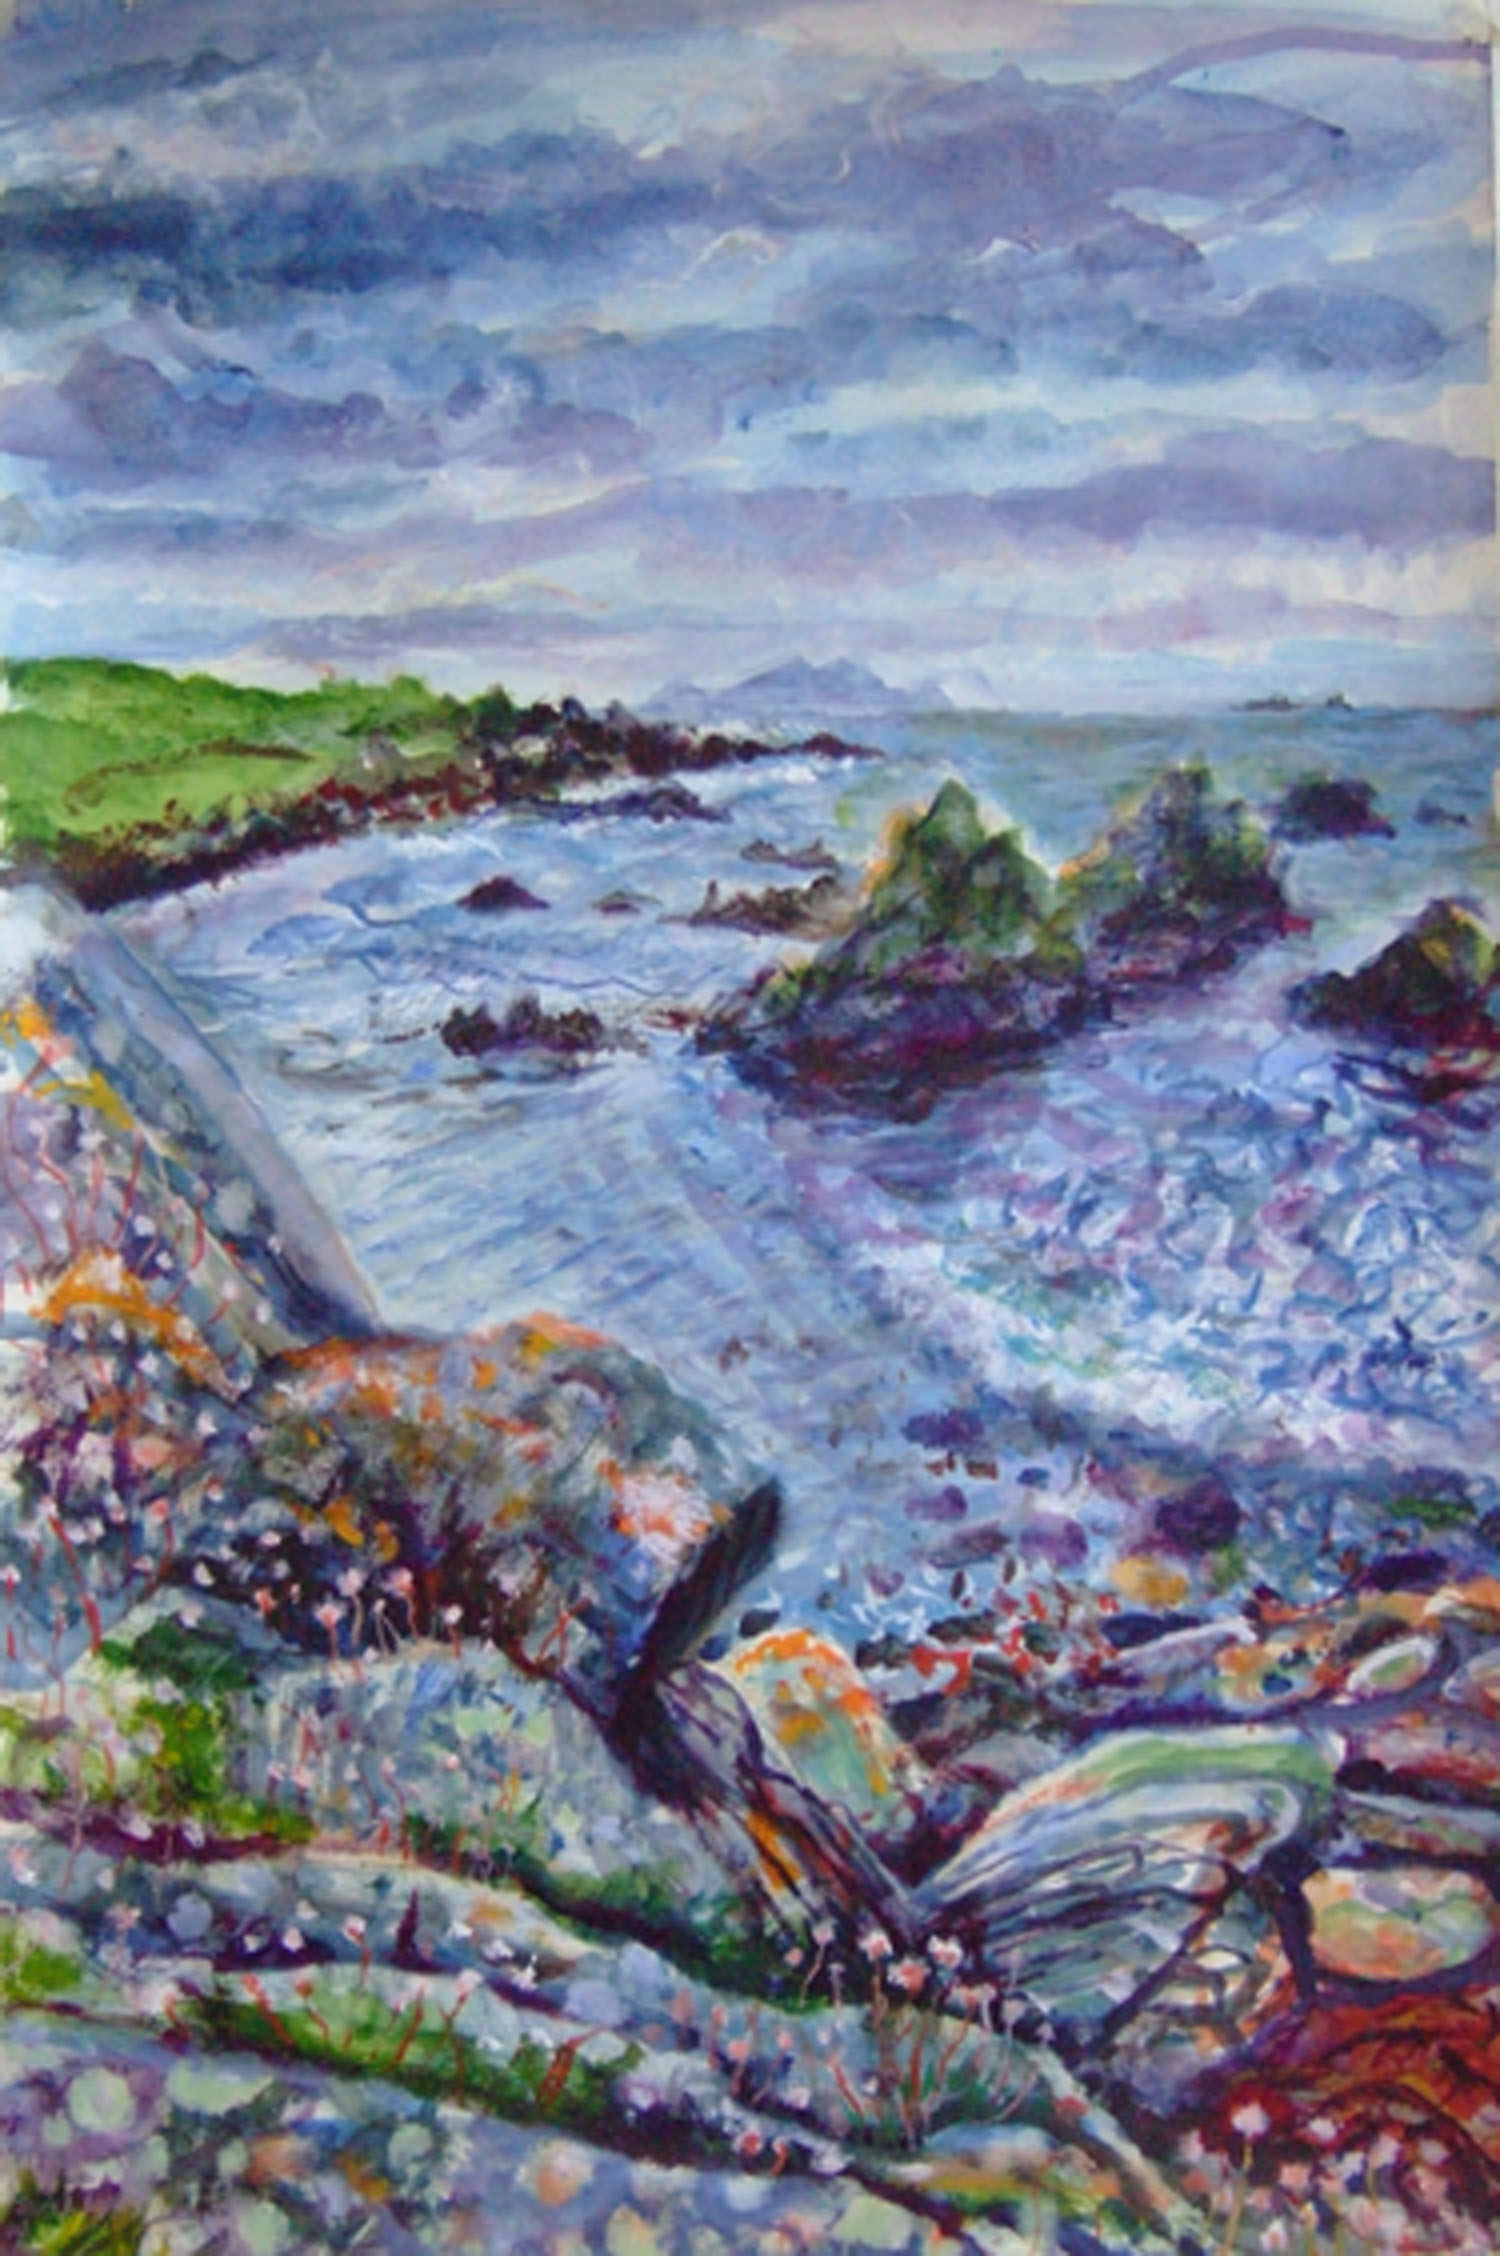 Sarah Longley_-_A Glinder at Foula_acrylic on card_91 x 61cm.jpg